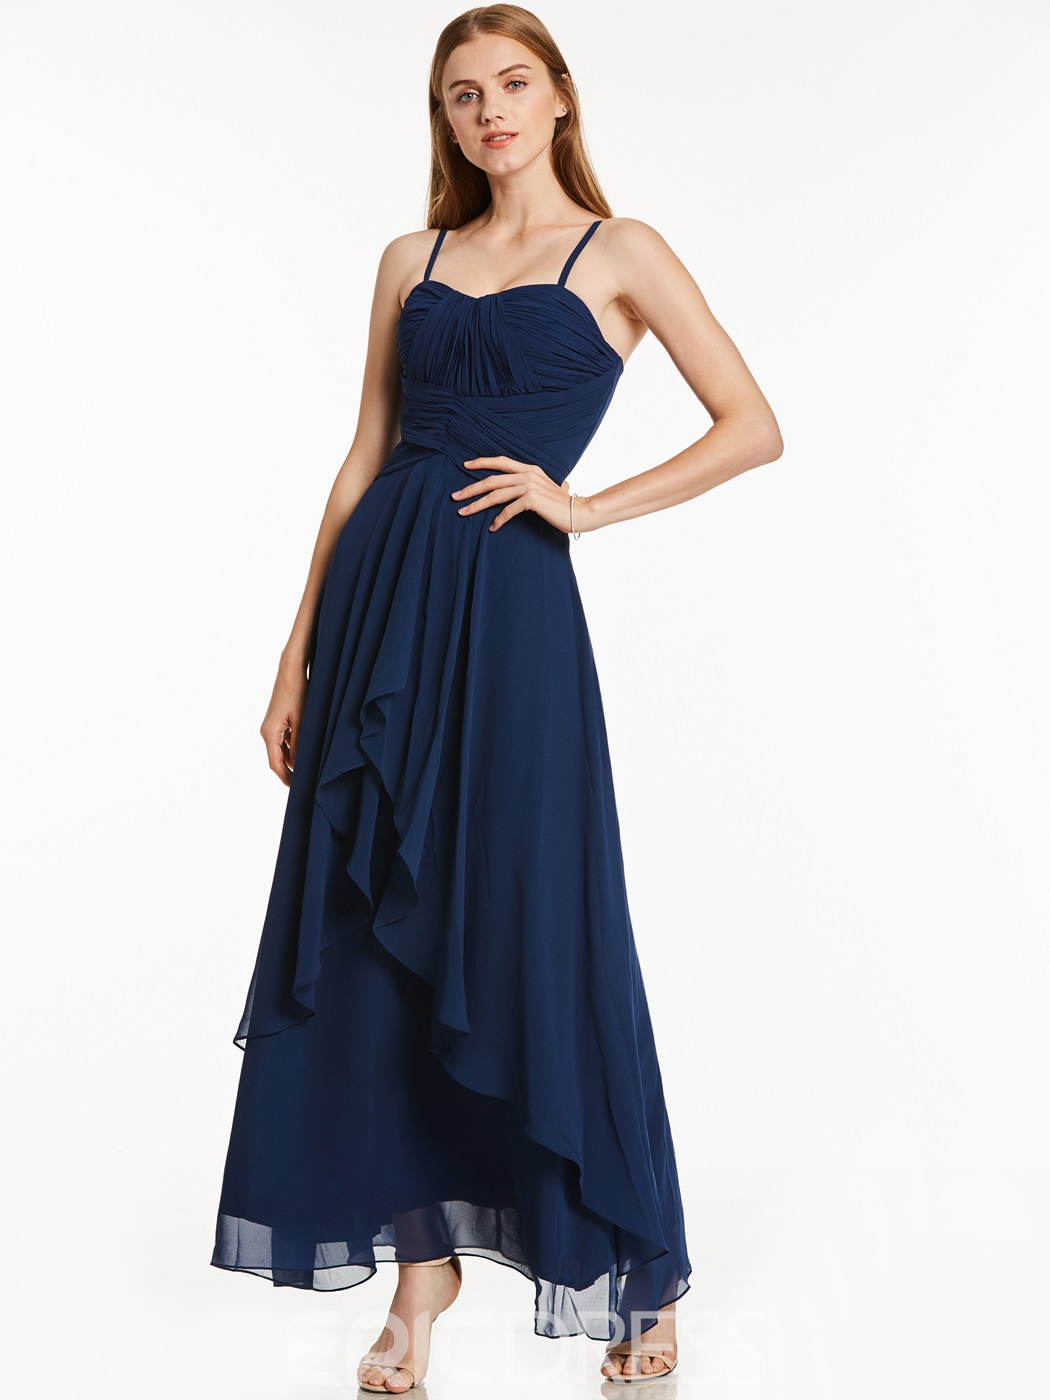 Ericdress Spaghetti Straps Pleats A Line Chiffon Ankle Length Prom Dress